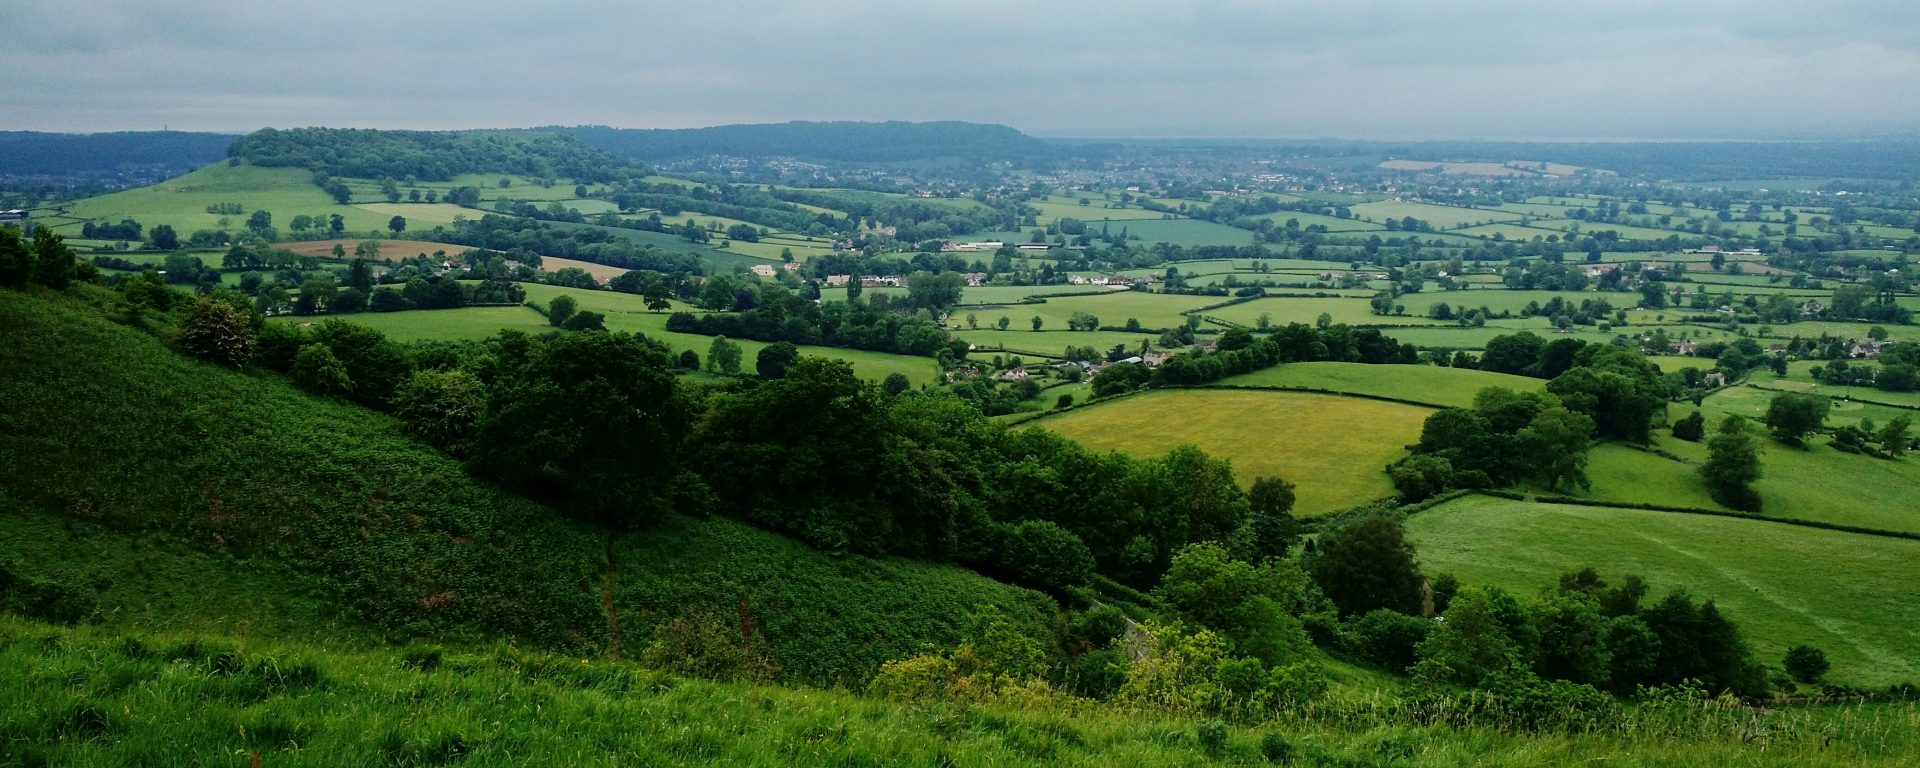 View from near Uley Bury, northeast of Dursley, Cotswolds